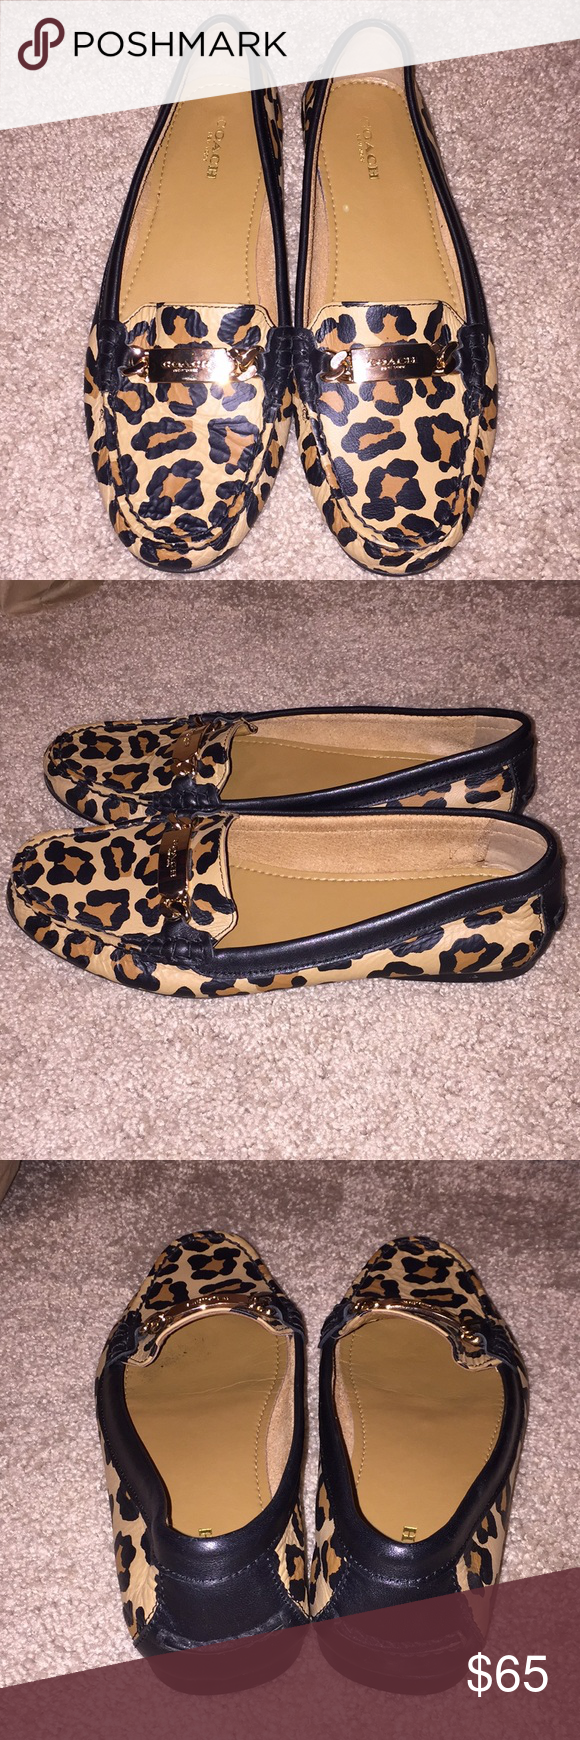 Leopard loafers, Leopard print loafers